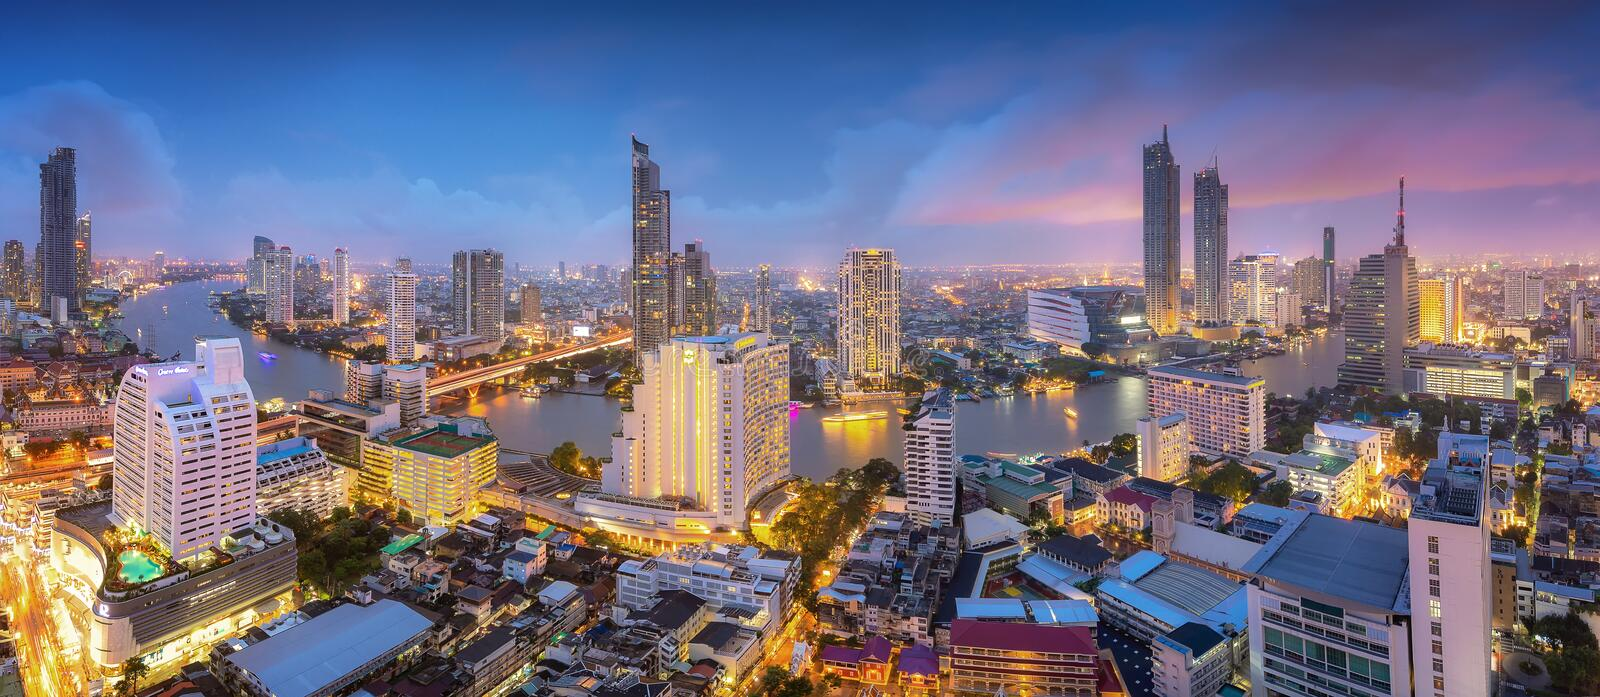 BANGKOK, THAILAND-August 27th 2018 : Aerial view of midtown in Thailand city with skyscrapers, Financial and business buildings ce royalty free stock photo